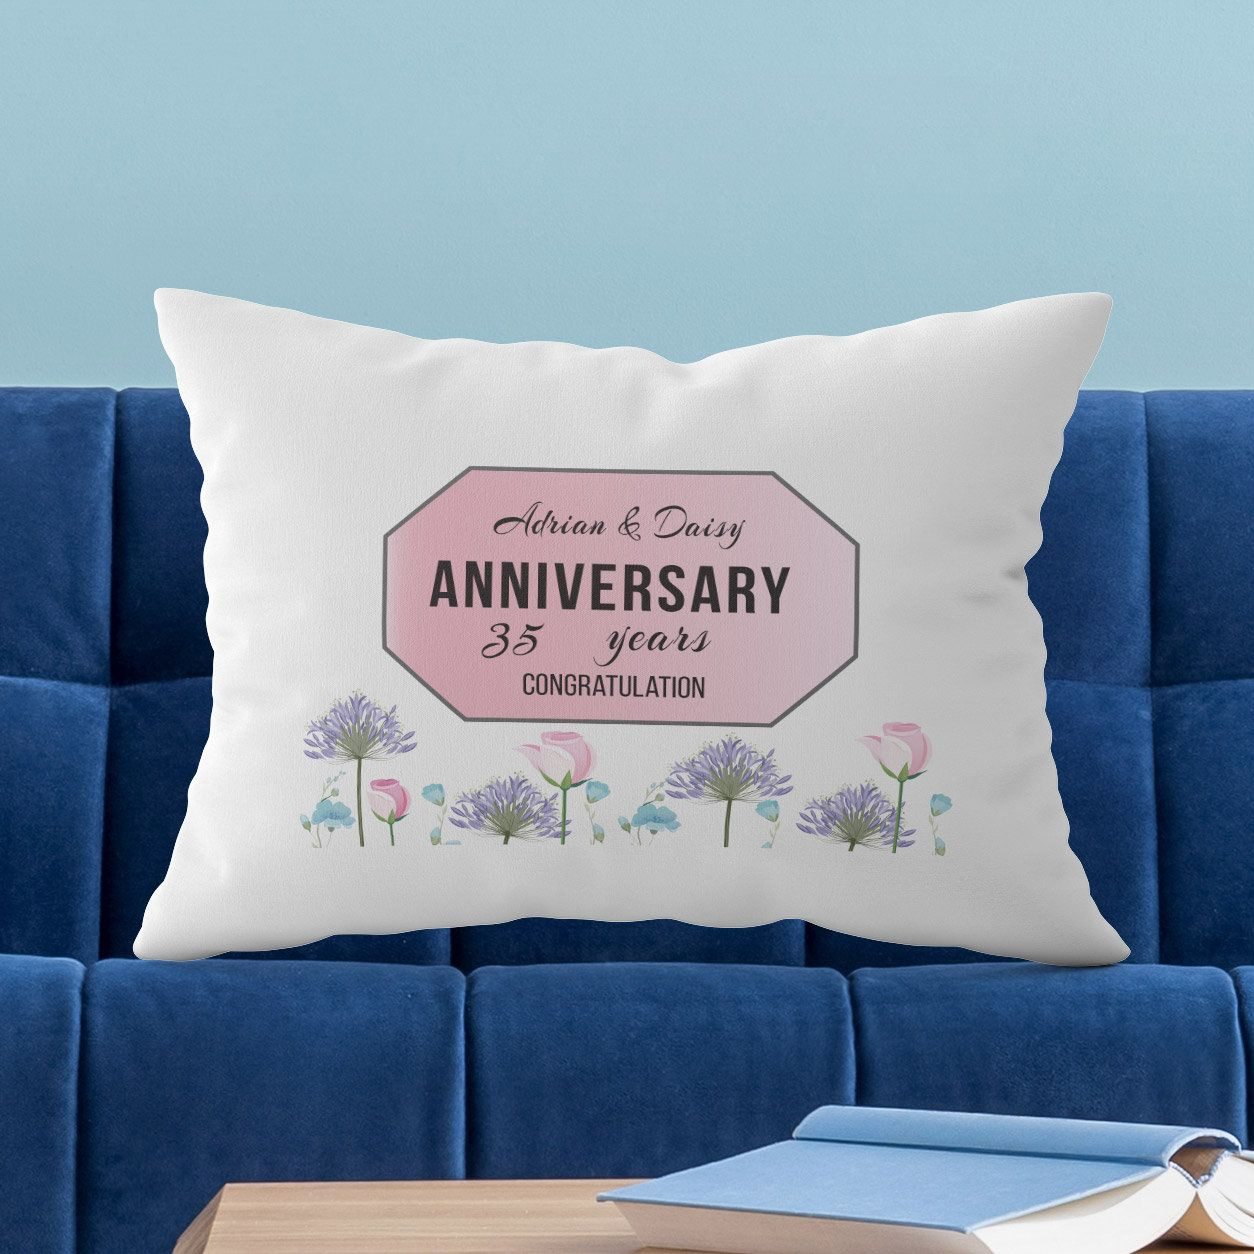 35th anniversary gifts for couples personalized pillow